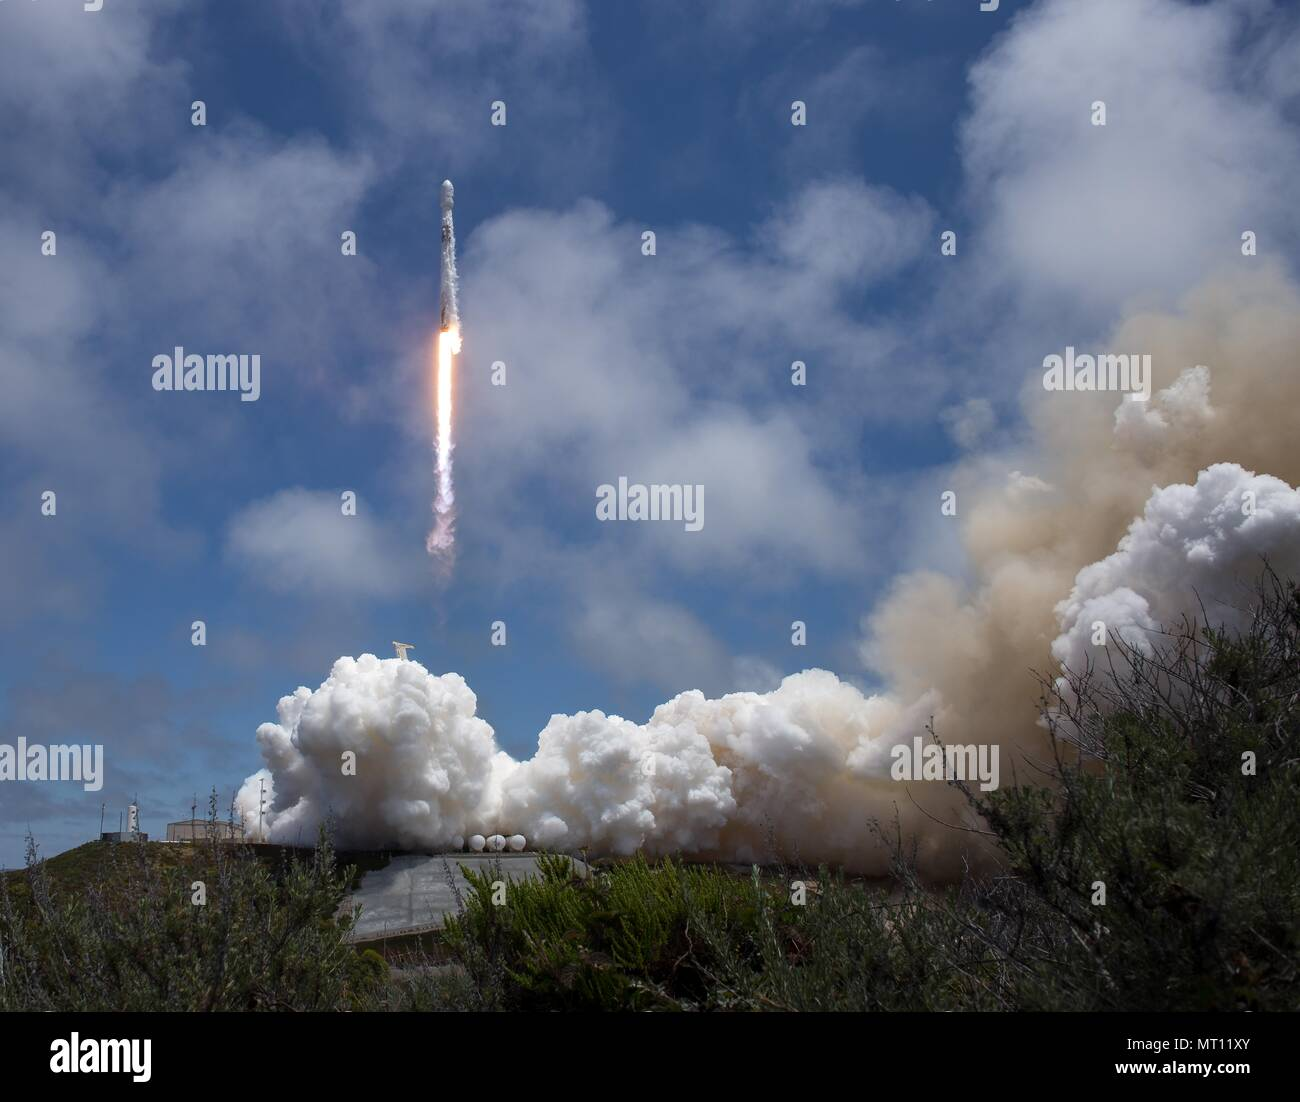 The SpaceX Falcon 9 rocket carrying the NASA German Research Centre for Geosciences GRACE Follow-On spacecraft launches from Space Launch Complex 4E at Vandenberg Air Force Base May 22, 2018 in Vandenberg, California. The GRACE-FO mission is sharing its ride to orbit with five Iridium NEXT communications satellites as part of a commercial ride share agreement. Stock Photo